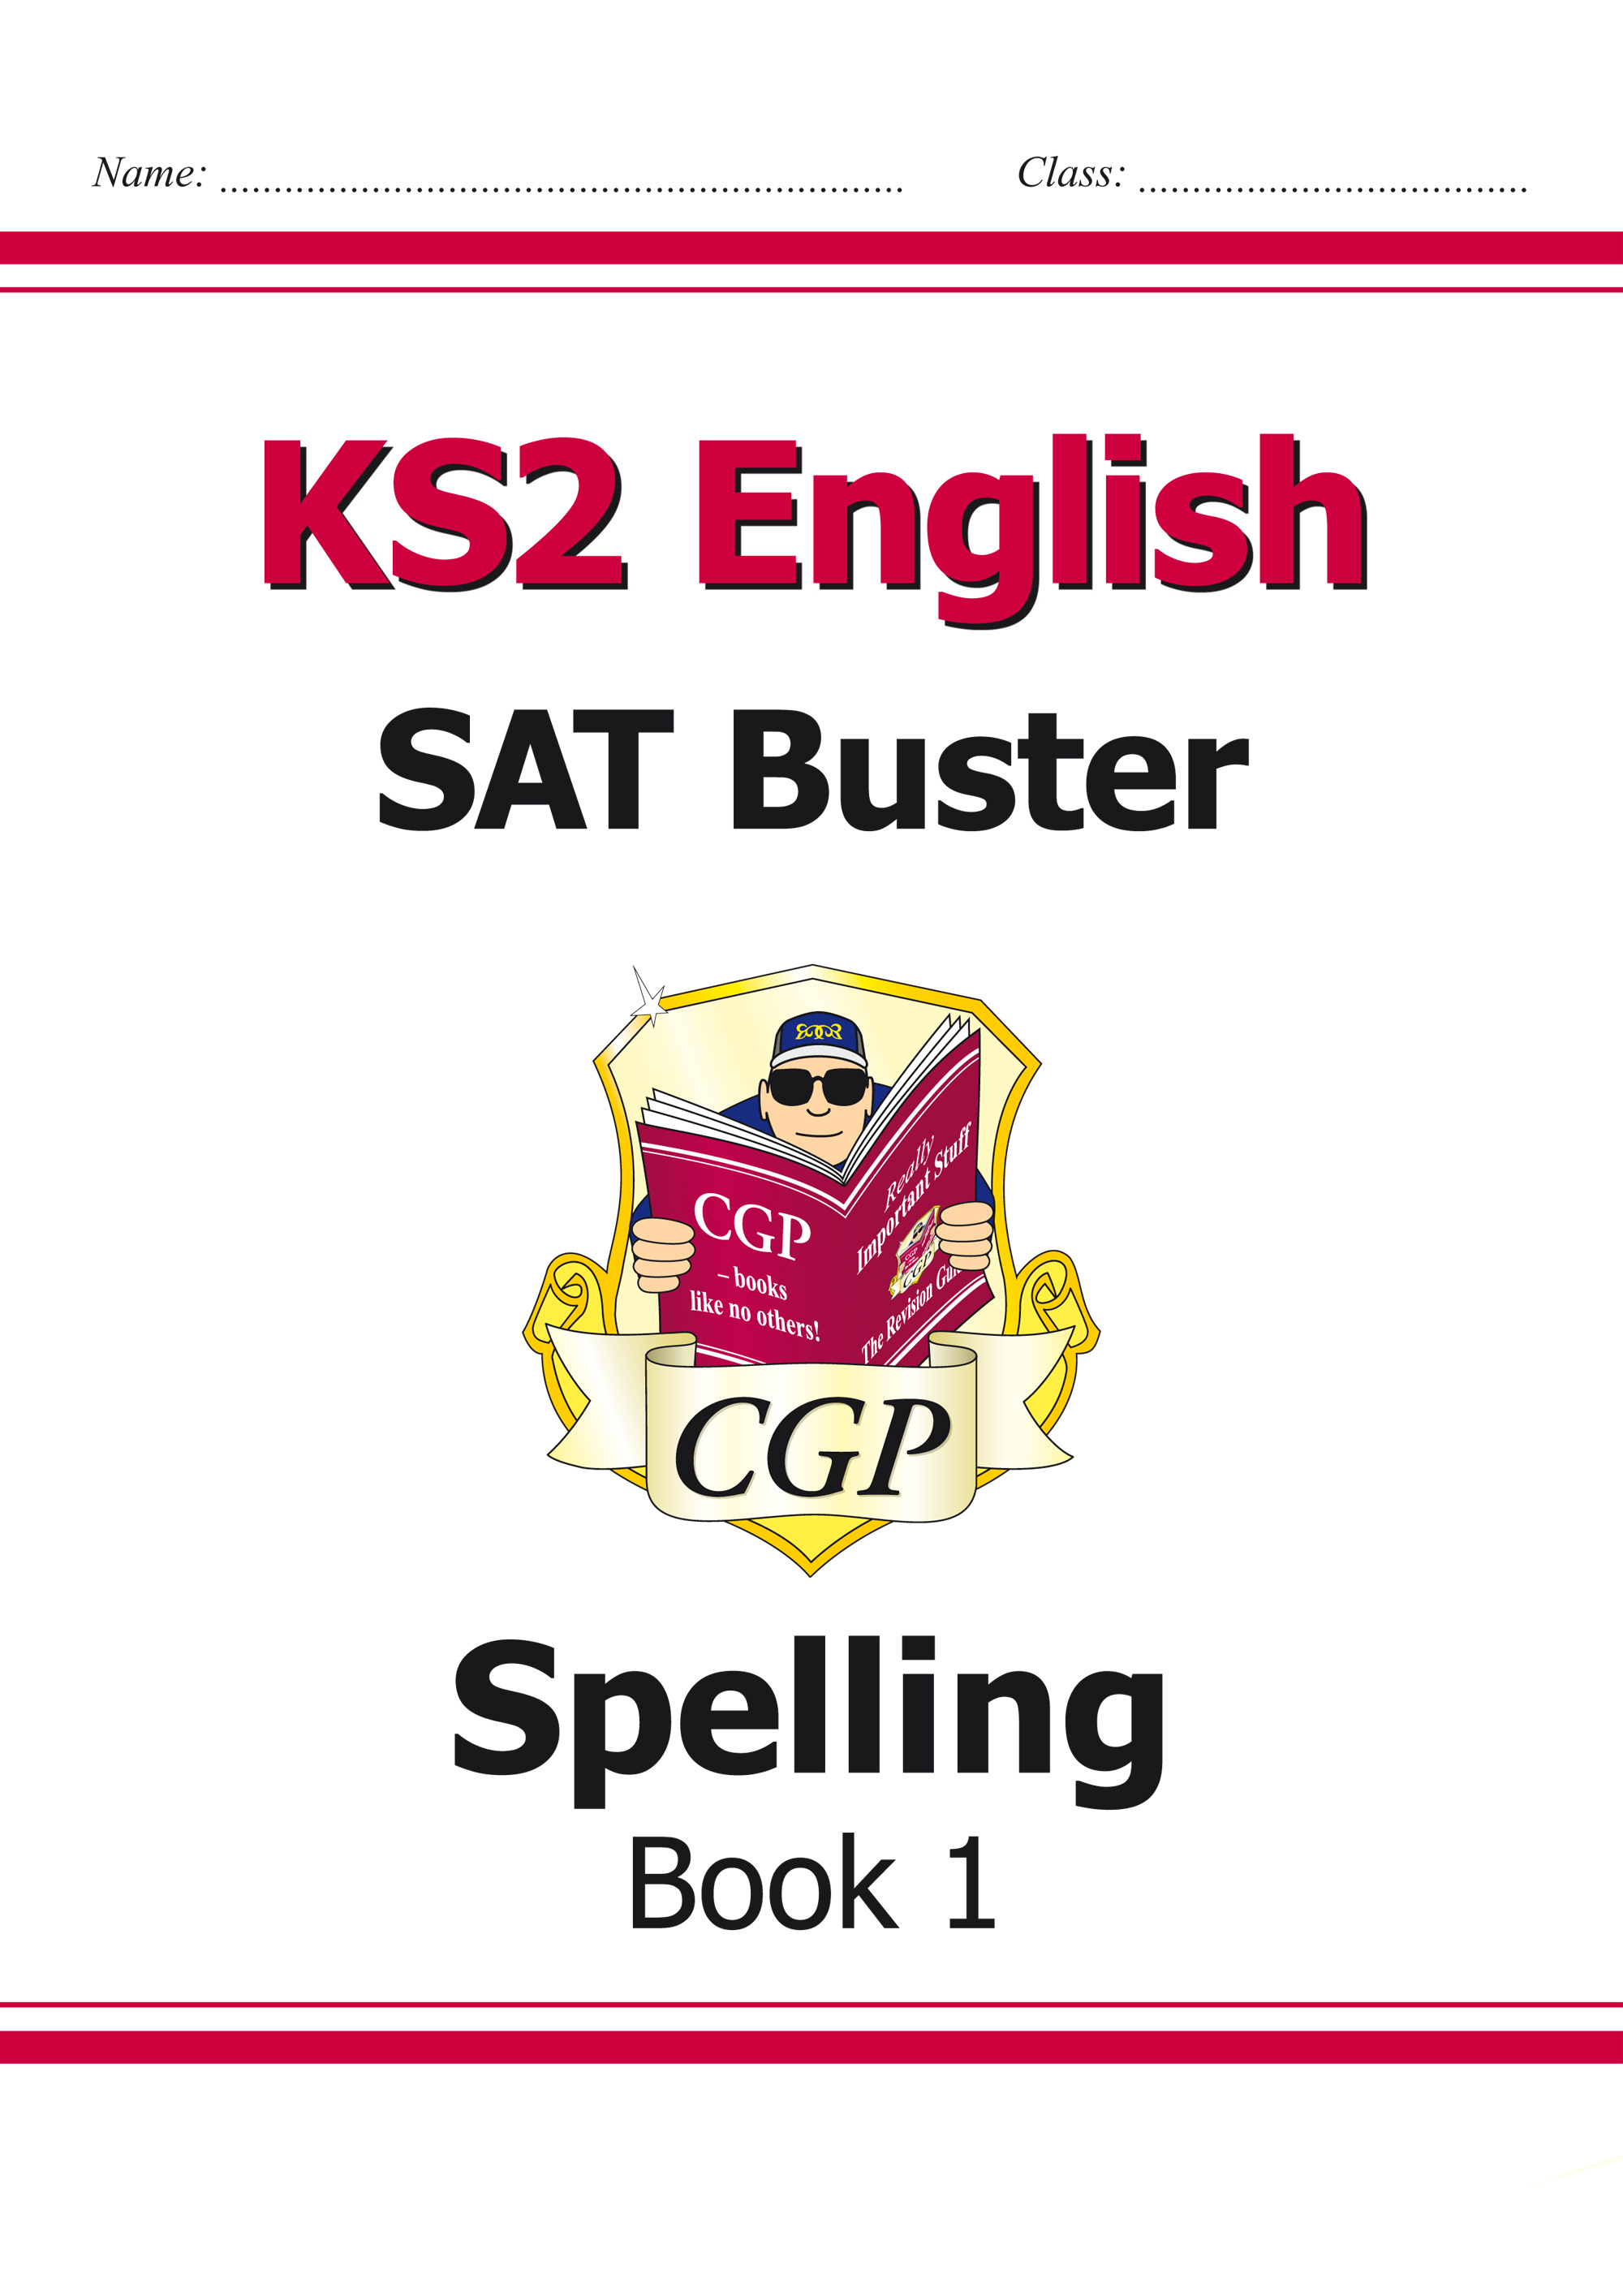 E6S23 - KS2 English SAT Buster: Spelling Book 1 (for the 2019 tests)